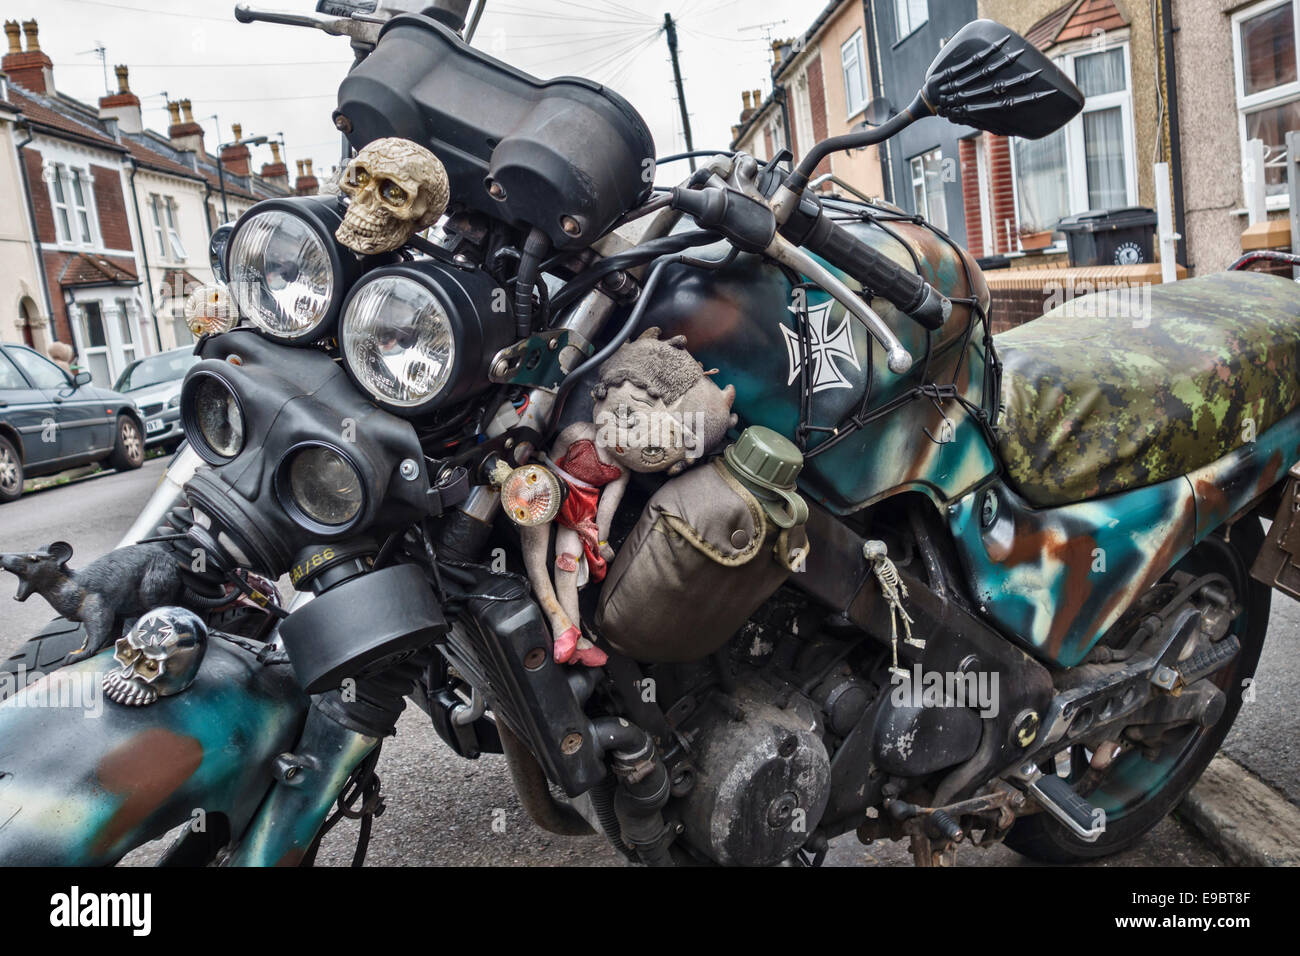 A motorcycle decorated for Halloween with skulls, skeletons, rats, gasmasks and even a Betty Boop doll - Stock Image